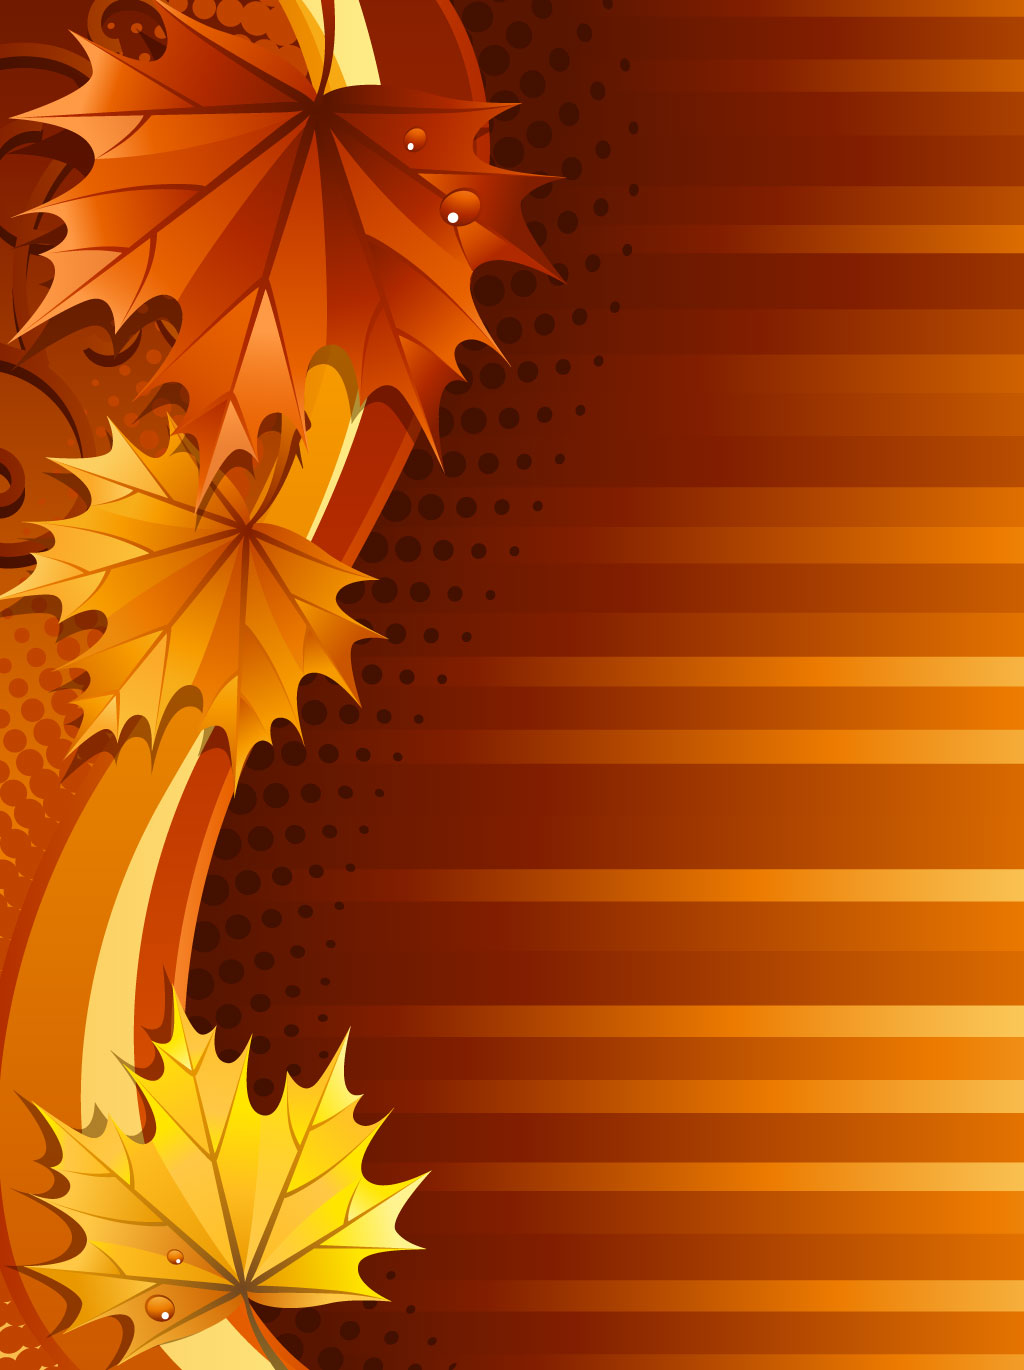 Autumn Leaf Background Vector Art & Graphics | freevector.com